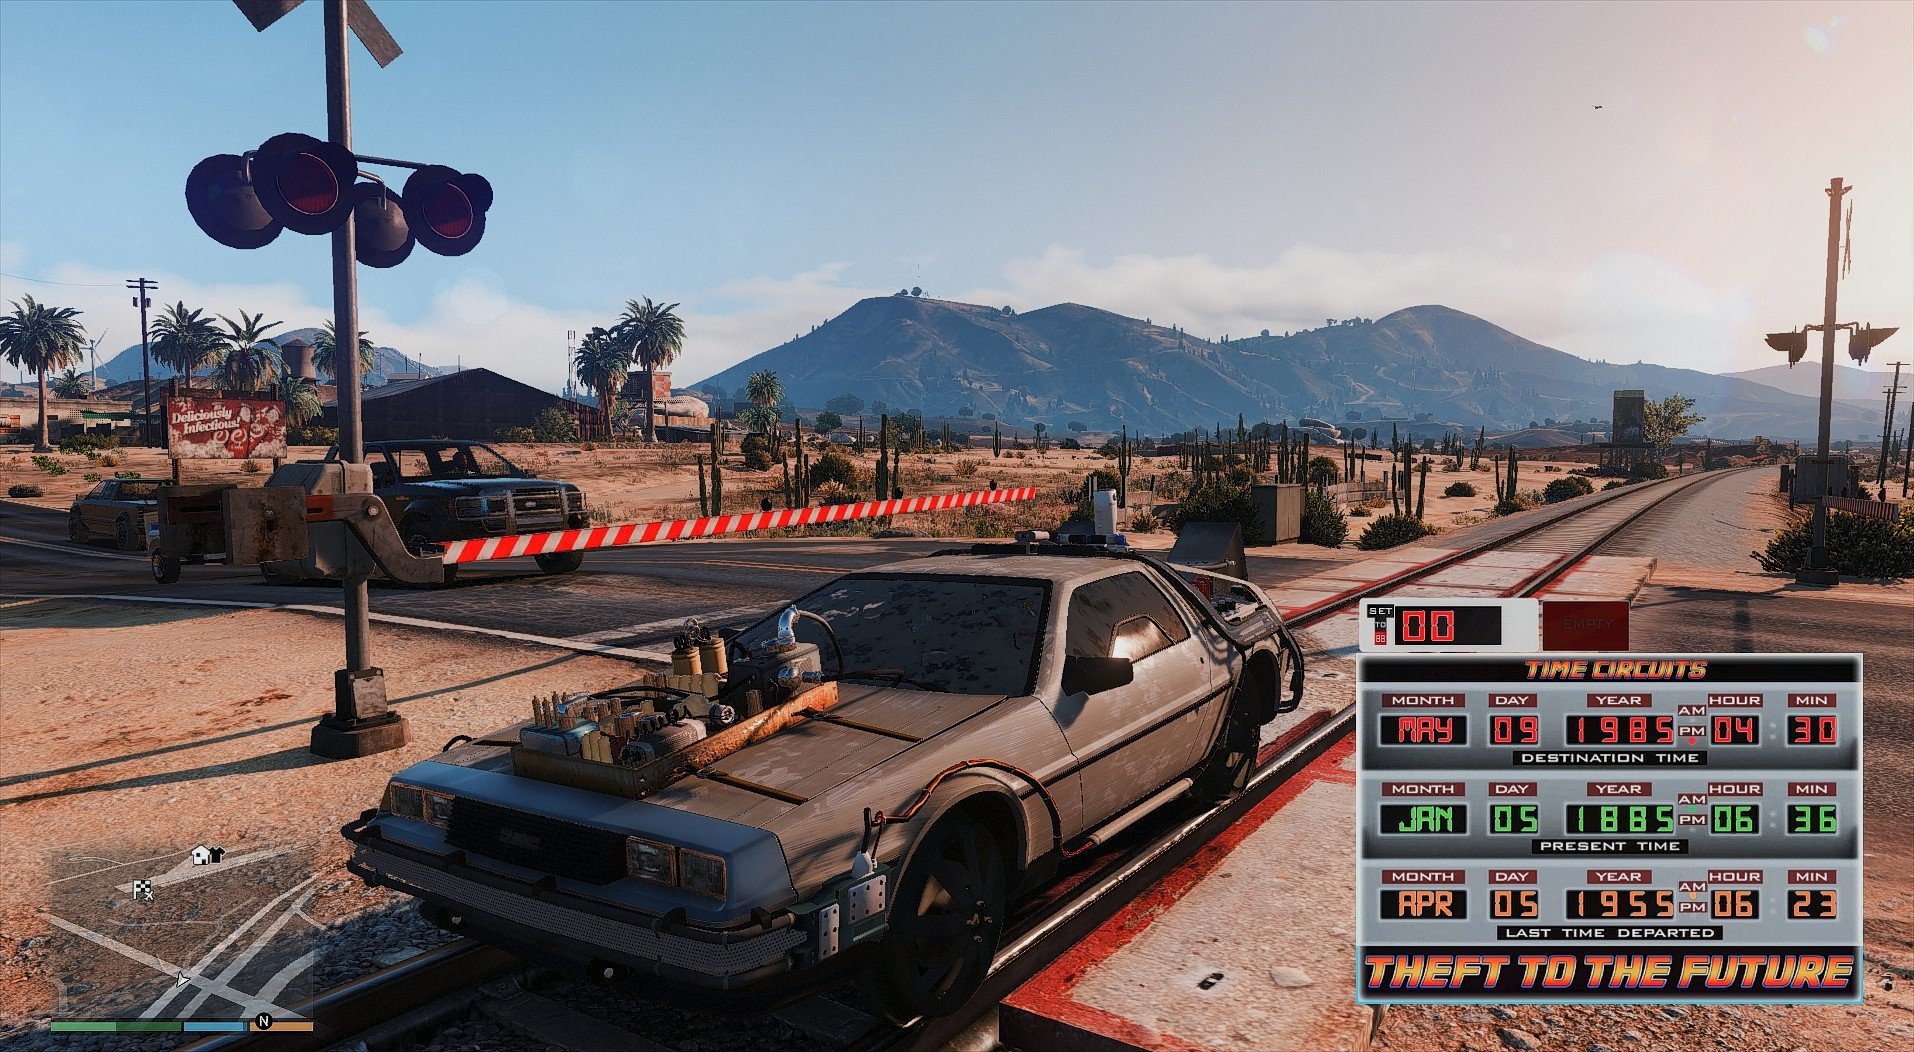 gta-v-back-to-the-future-mod-image-719.j